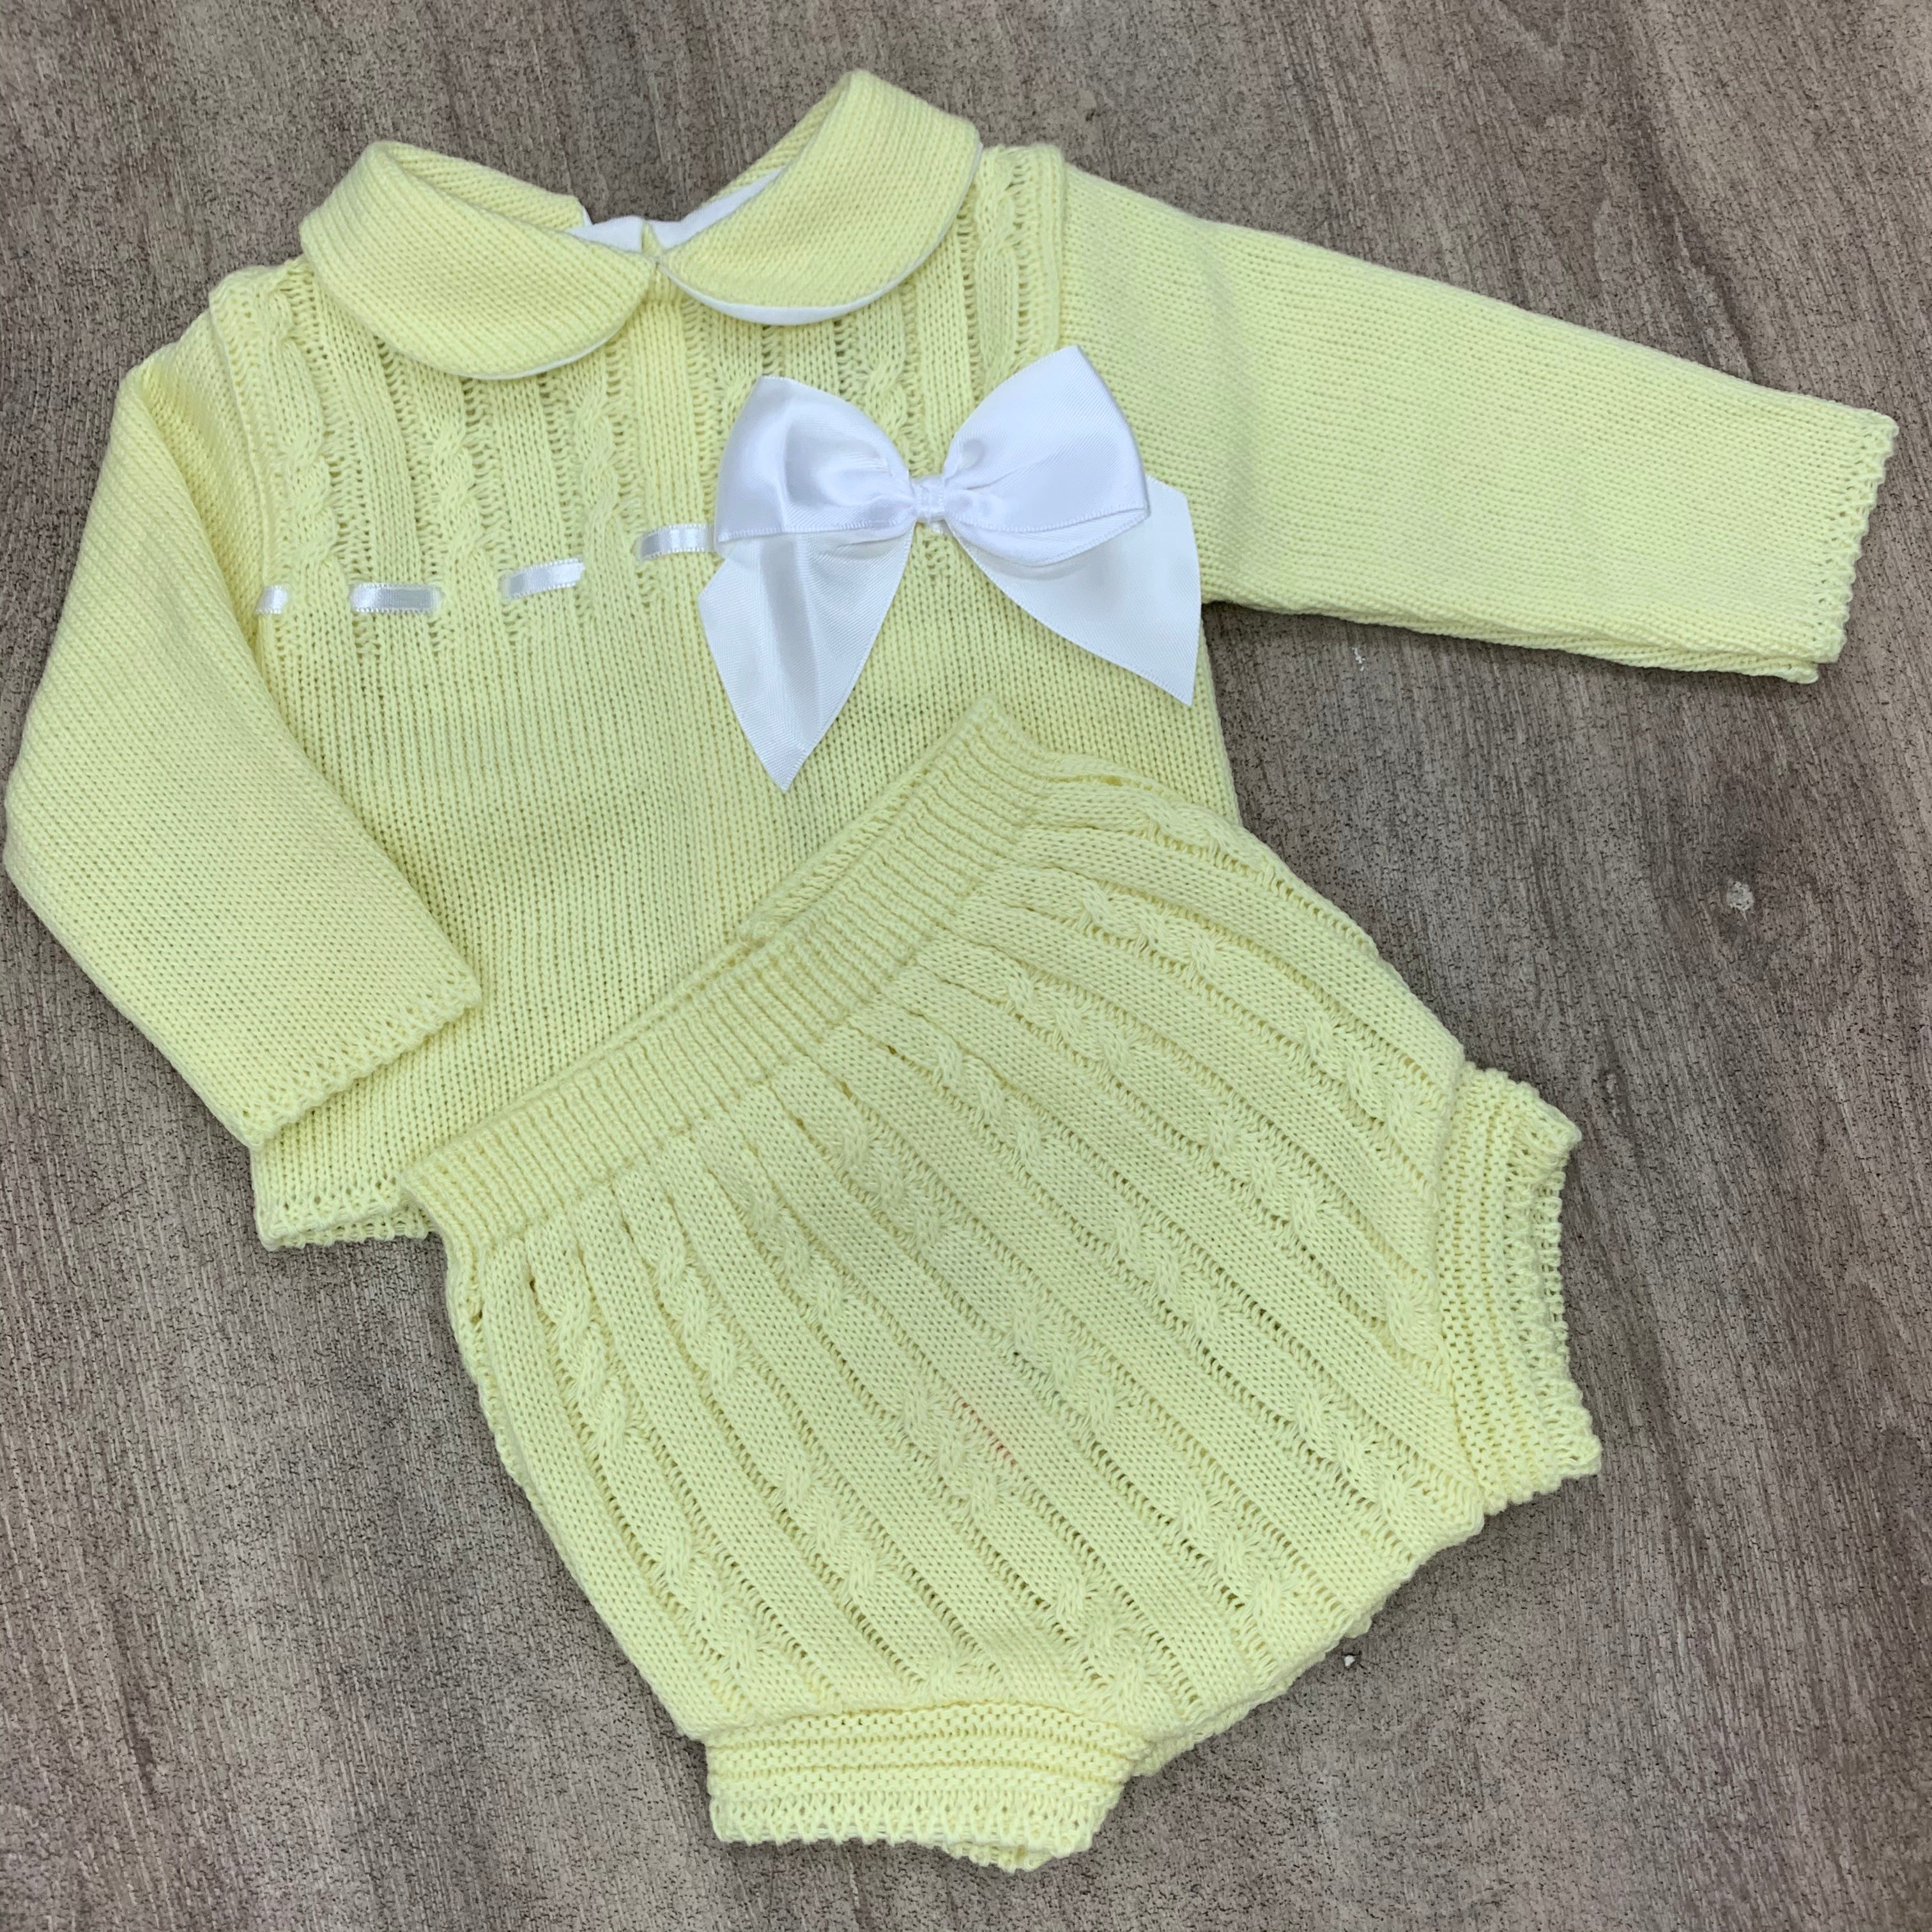 Amelia 2 Piece Knitted Bow Set - Lemon